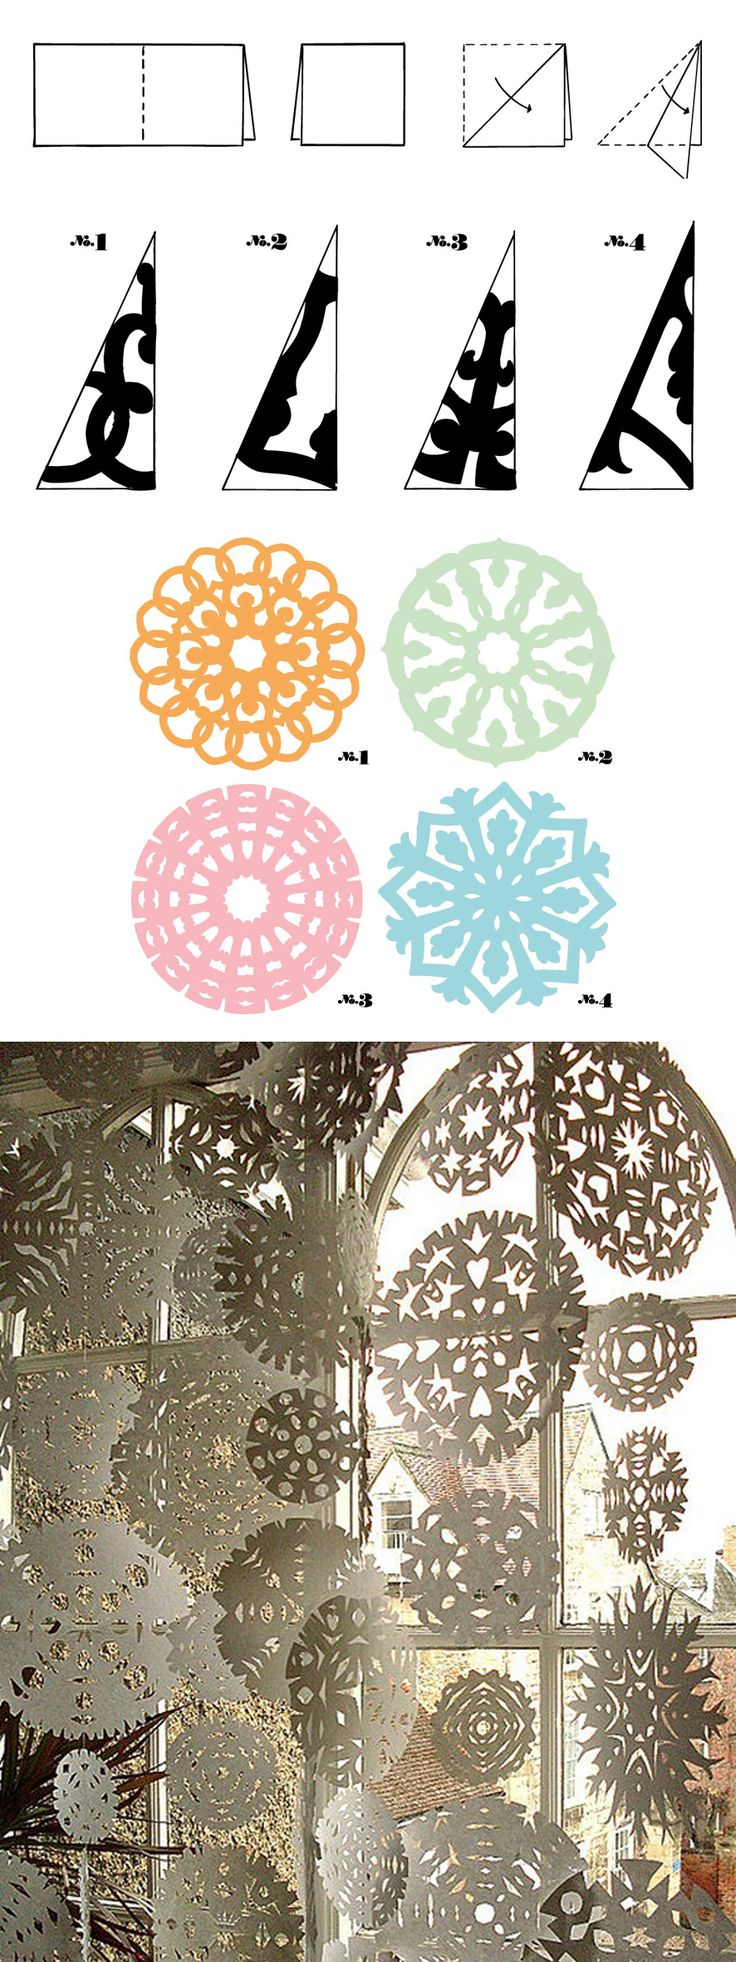 Como hacer copos de nieve de papel/ As making paper snowflakes #recycle design (Cool Art Projects)